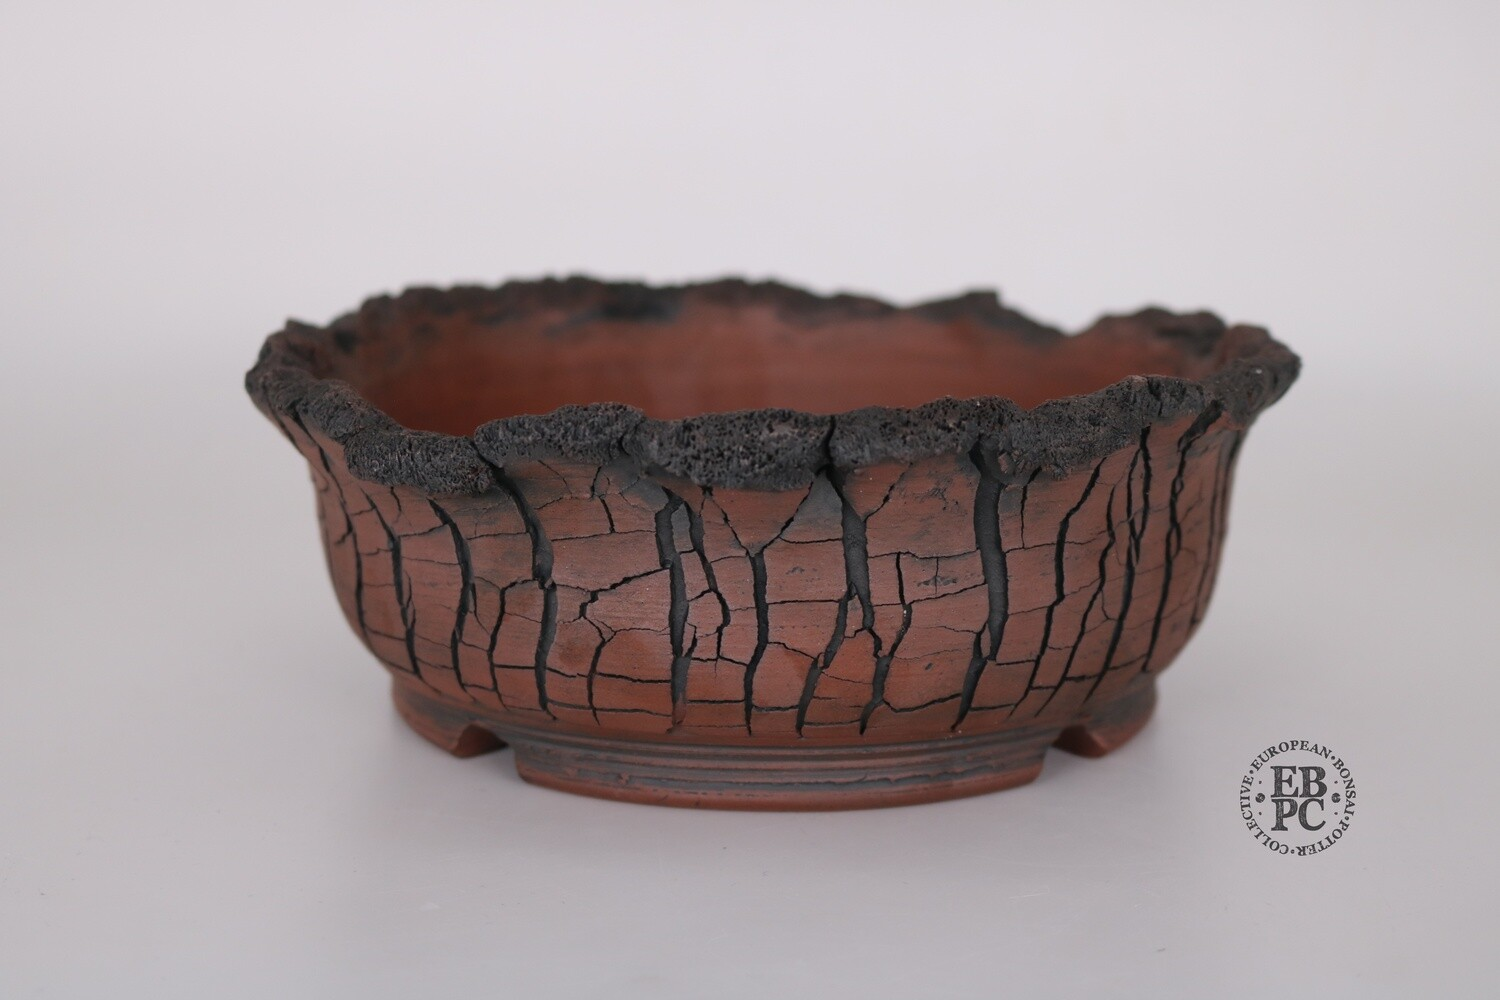 SOLD - Paul Rogers Ceramics - 19.6cm; Unglazed; Round; Crackle Finish; Decaying Lip Detail; Browns; EBPC Stamped;